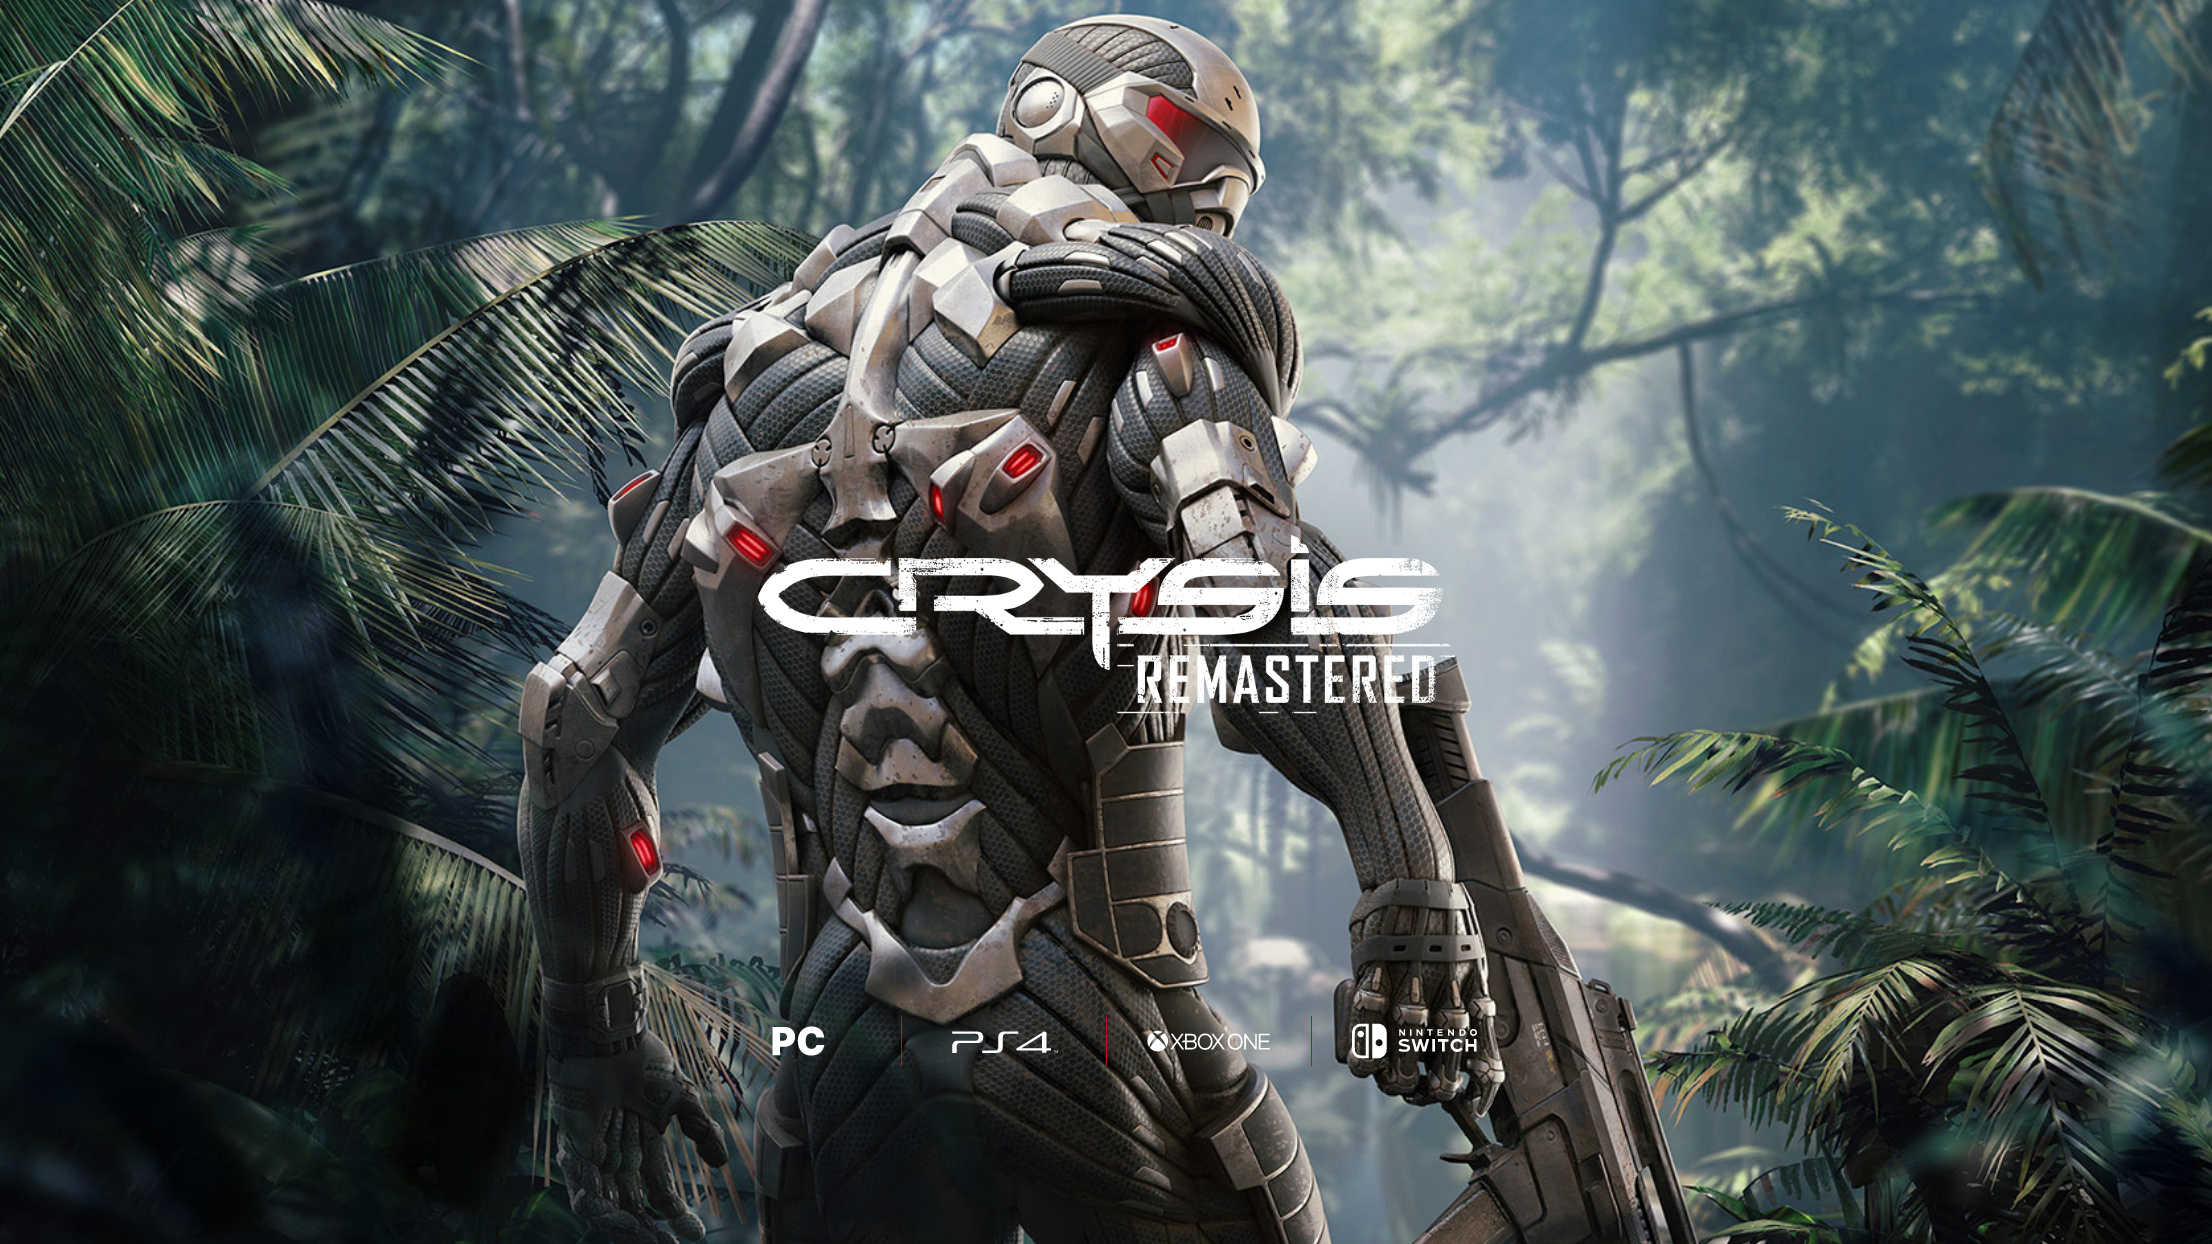 Crysis Remastered heading to Switch